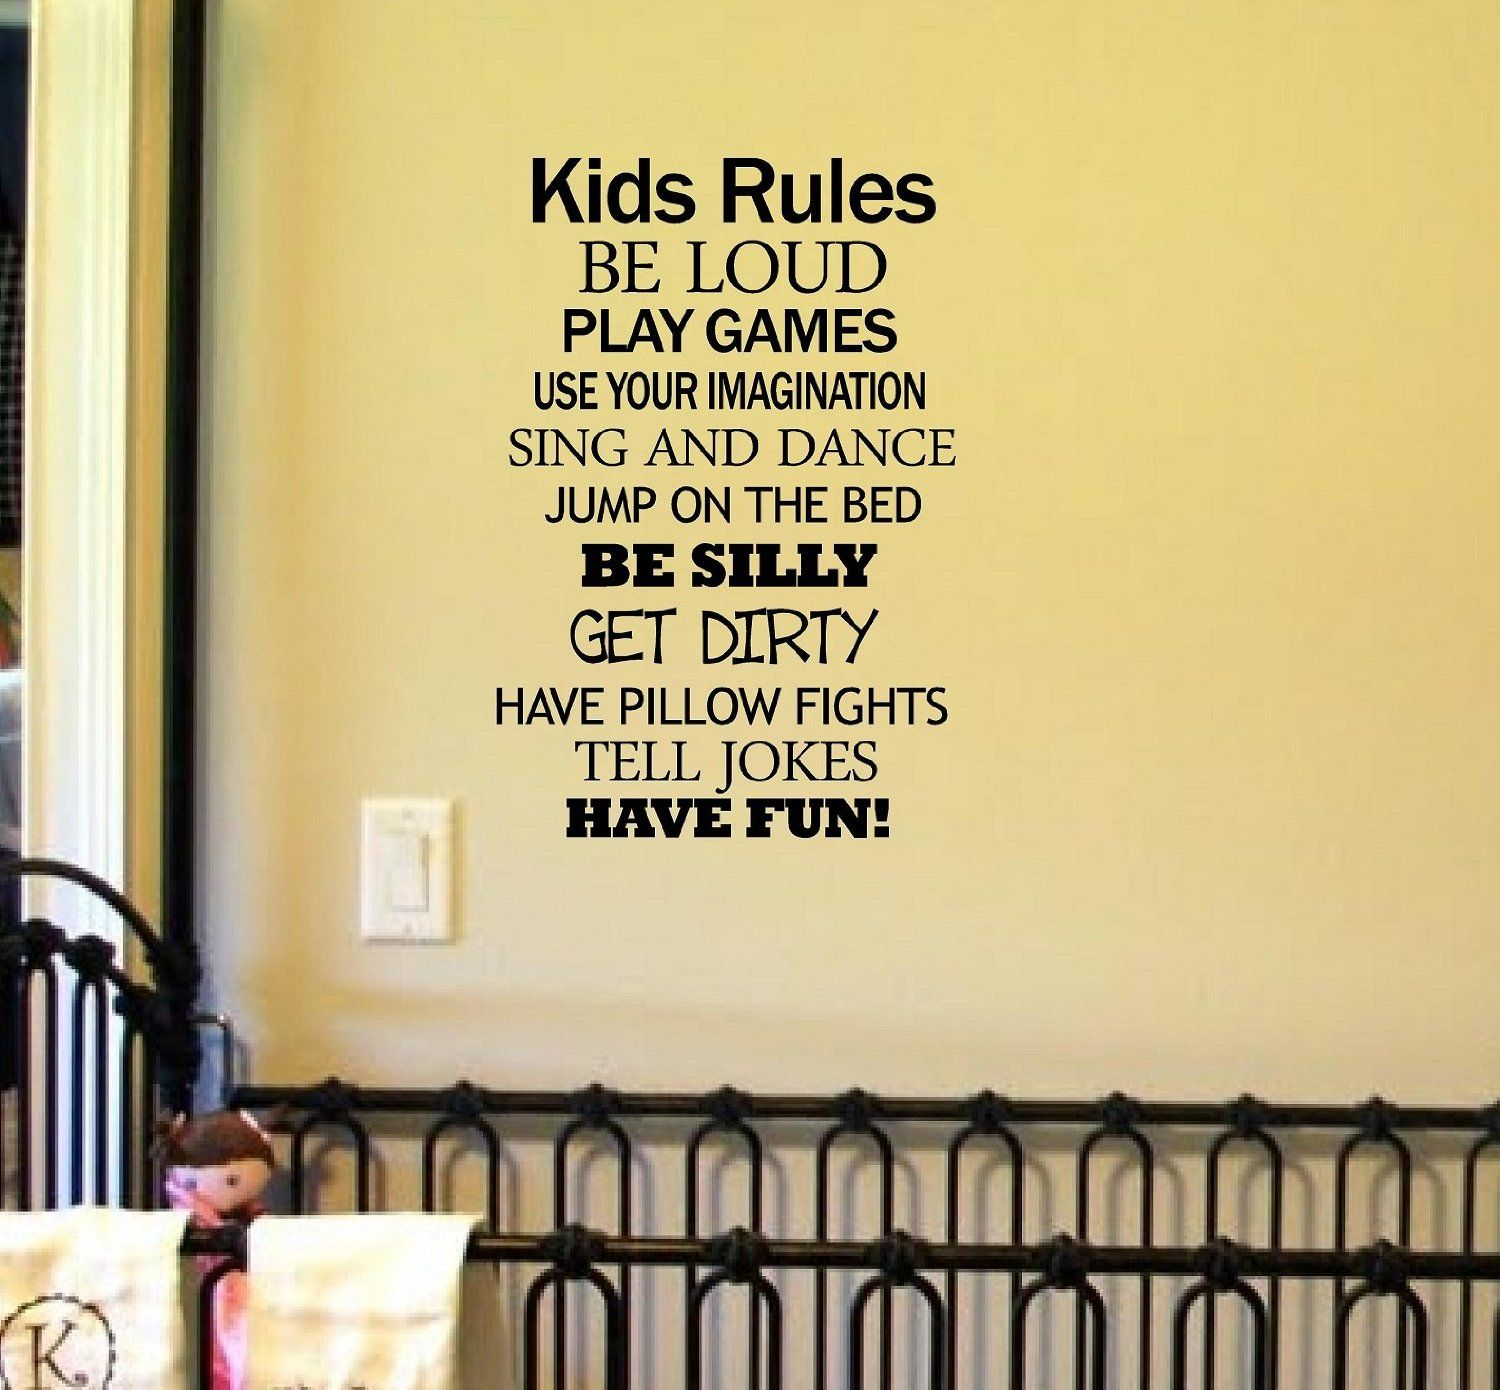 Amazon.com: KIDS RULES BE LOUD PLAY GAMES USE YOUR IMAGINATION SING ...